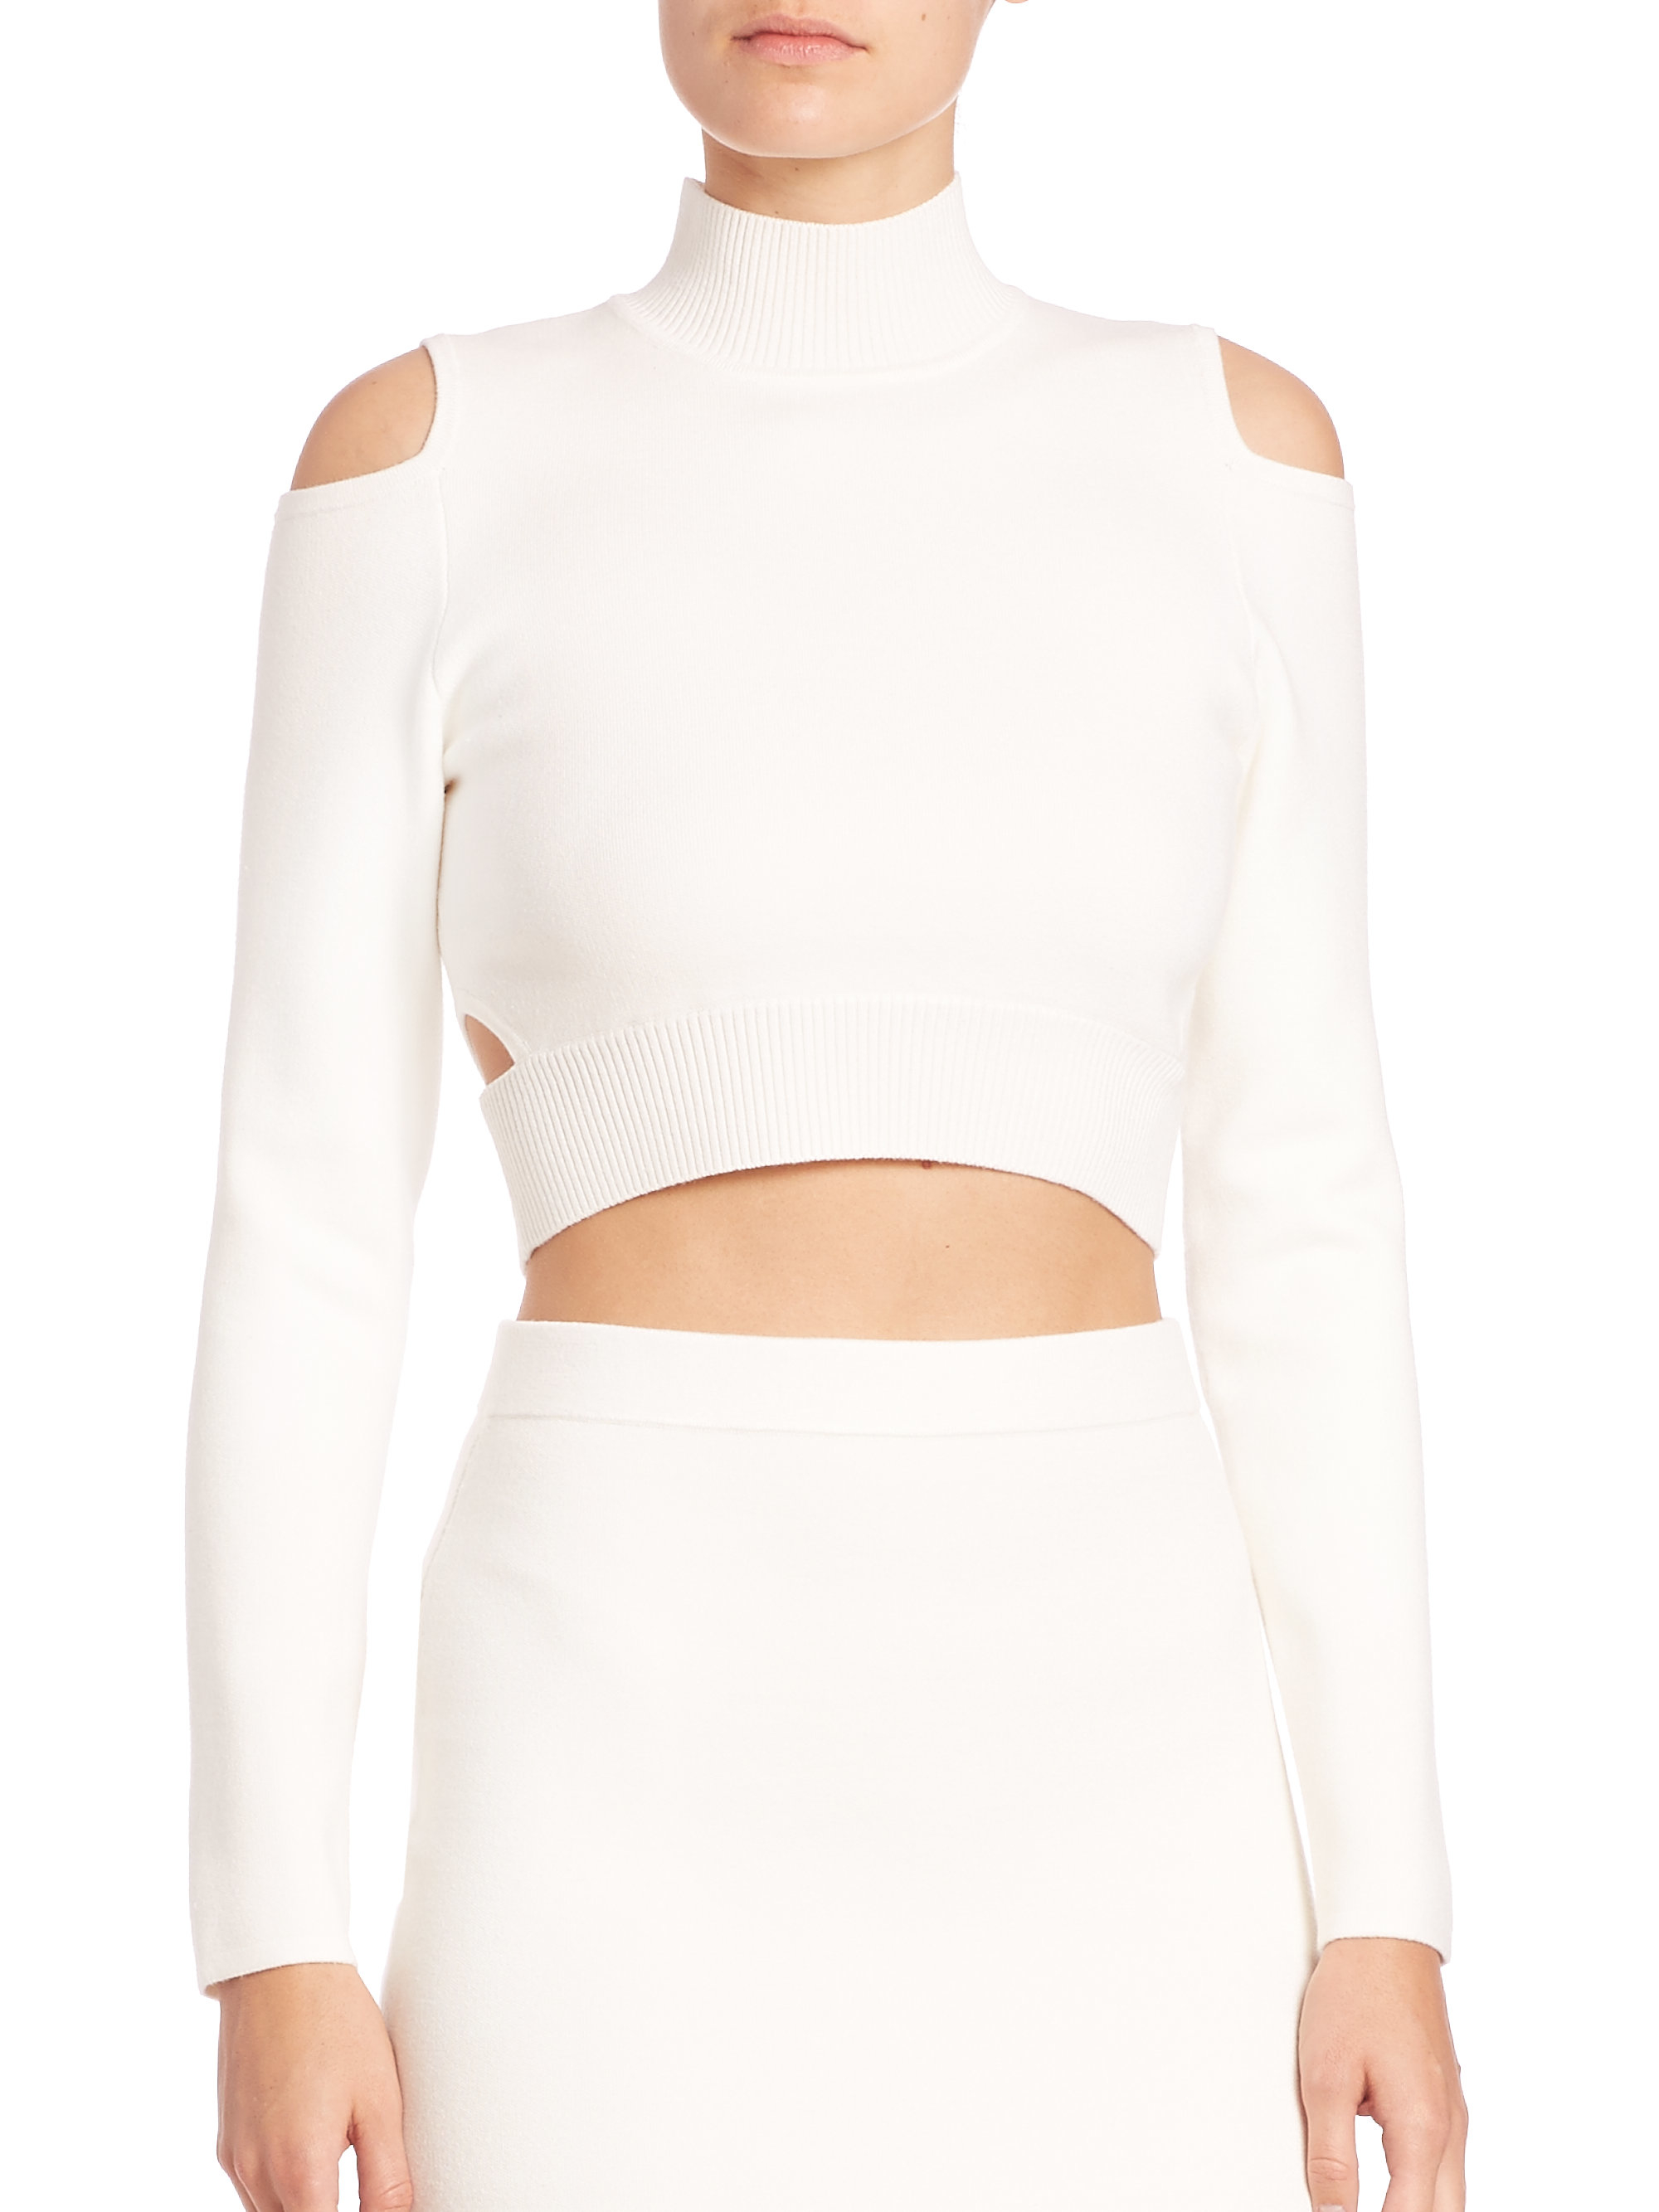 Lyst - Jonathan Simkhai Cutout Cropped Turtleneck Sweater in White 6bdb3cbb8